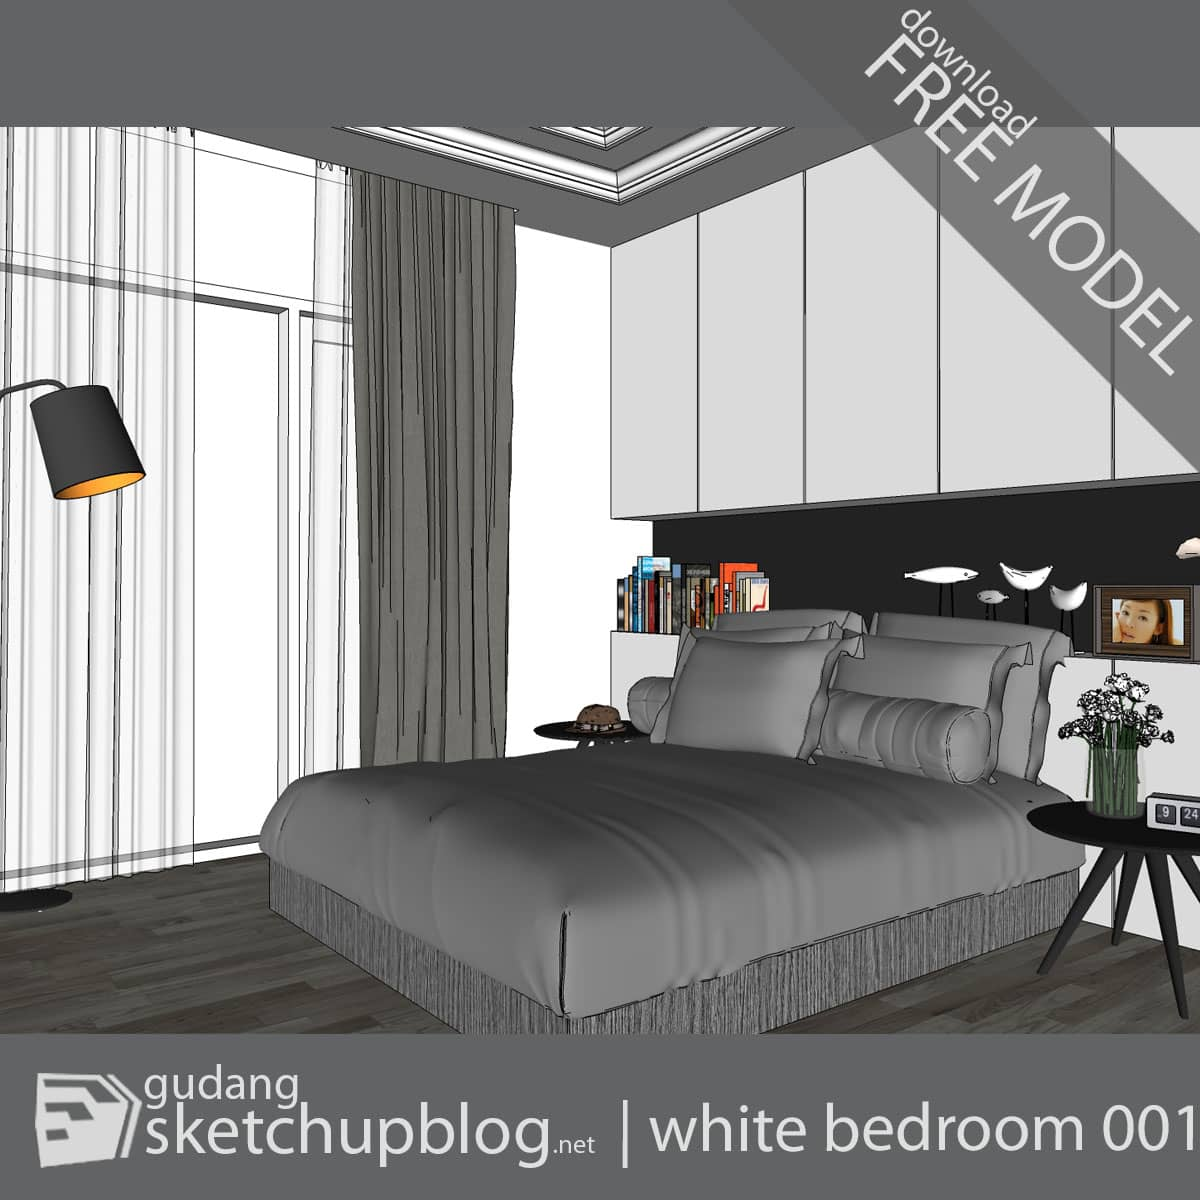 Interior Scene | White Bedroom 001 - gudang | sketchupblog